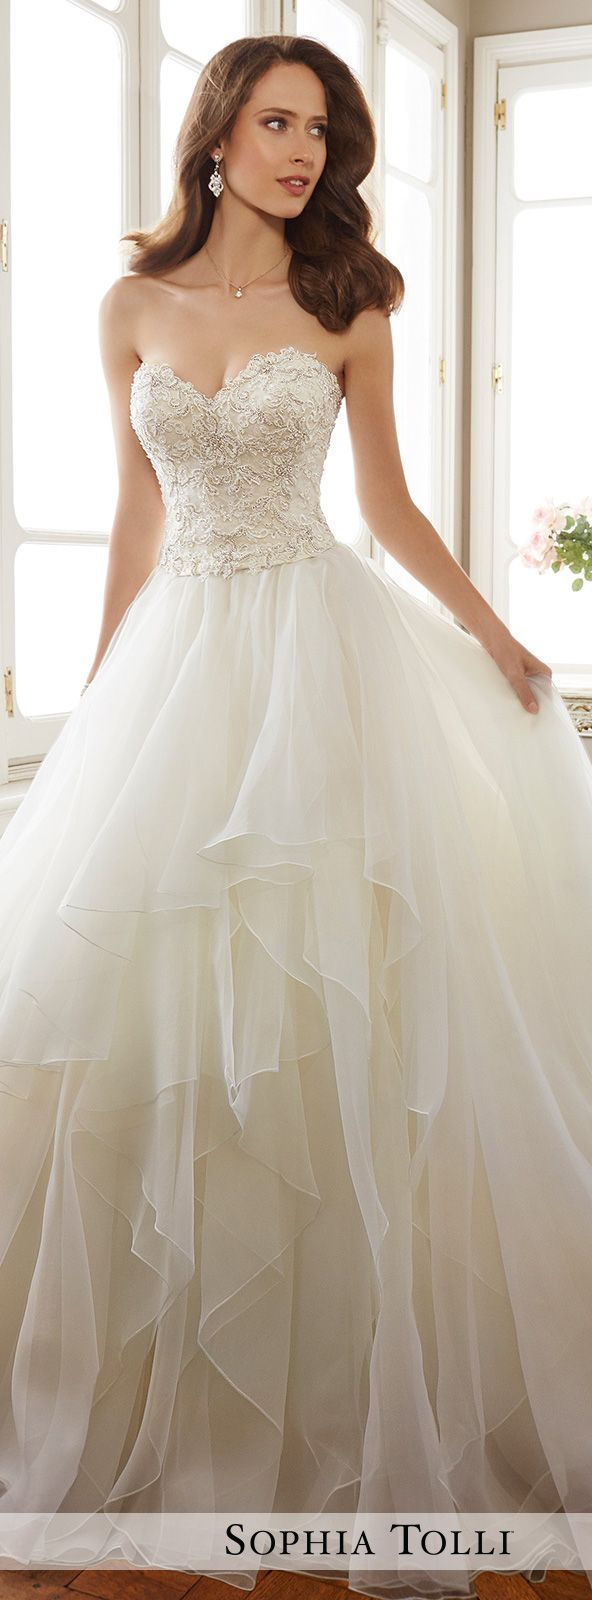 Styles of wedding dresses gown and dress gallery for Wedding dress pick up style